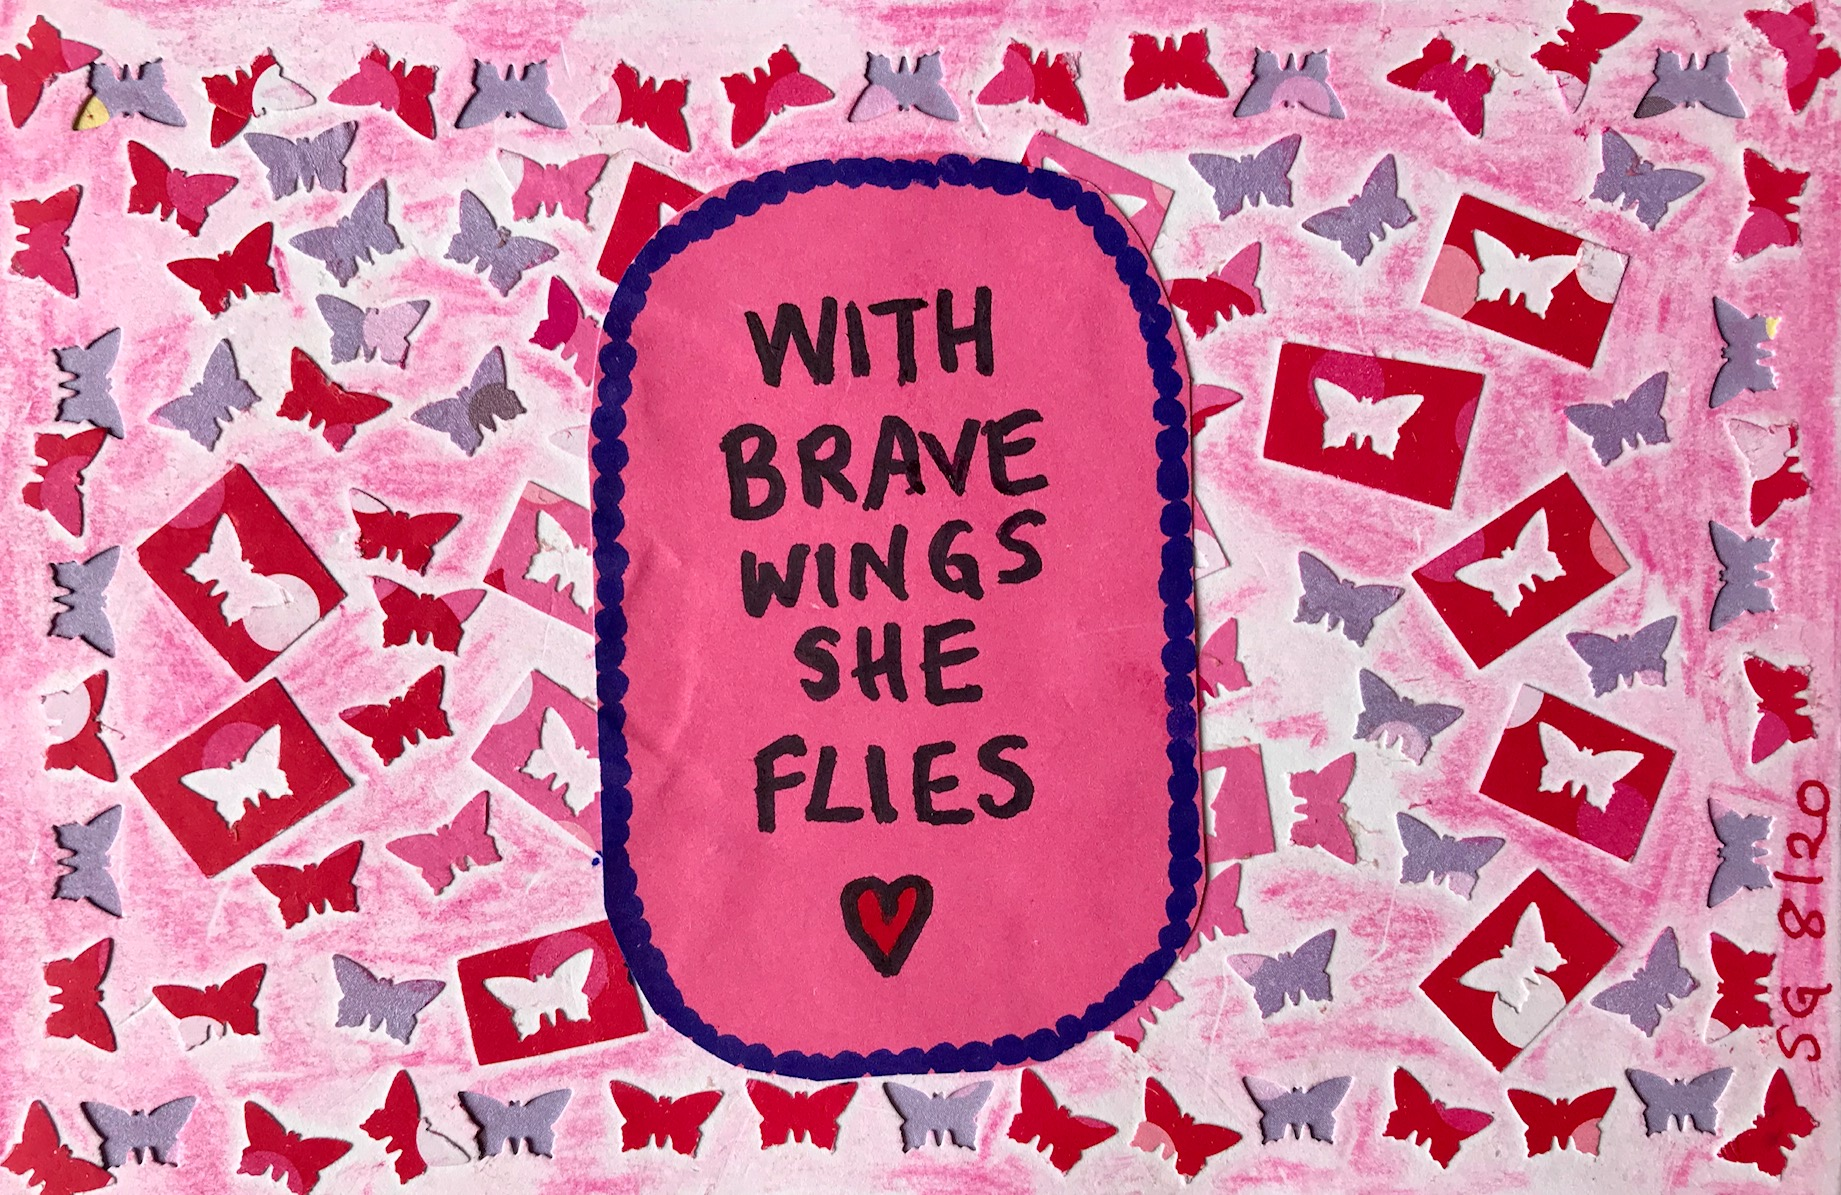 Pink backround graphic with words 'with brave wings she flies'